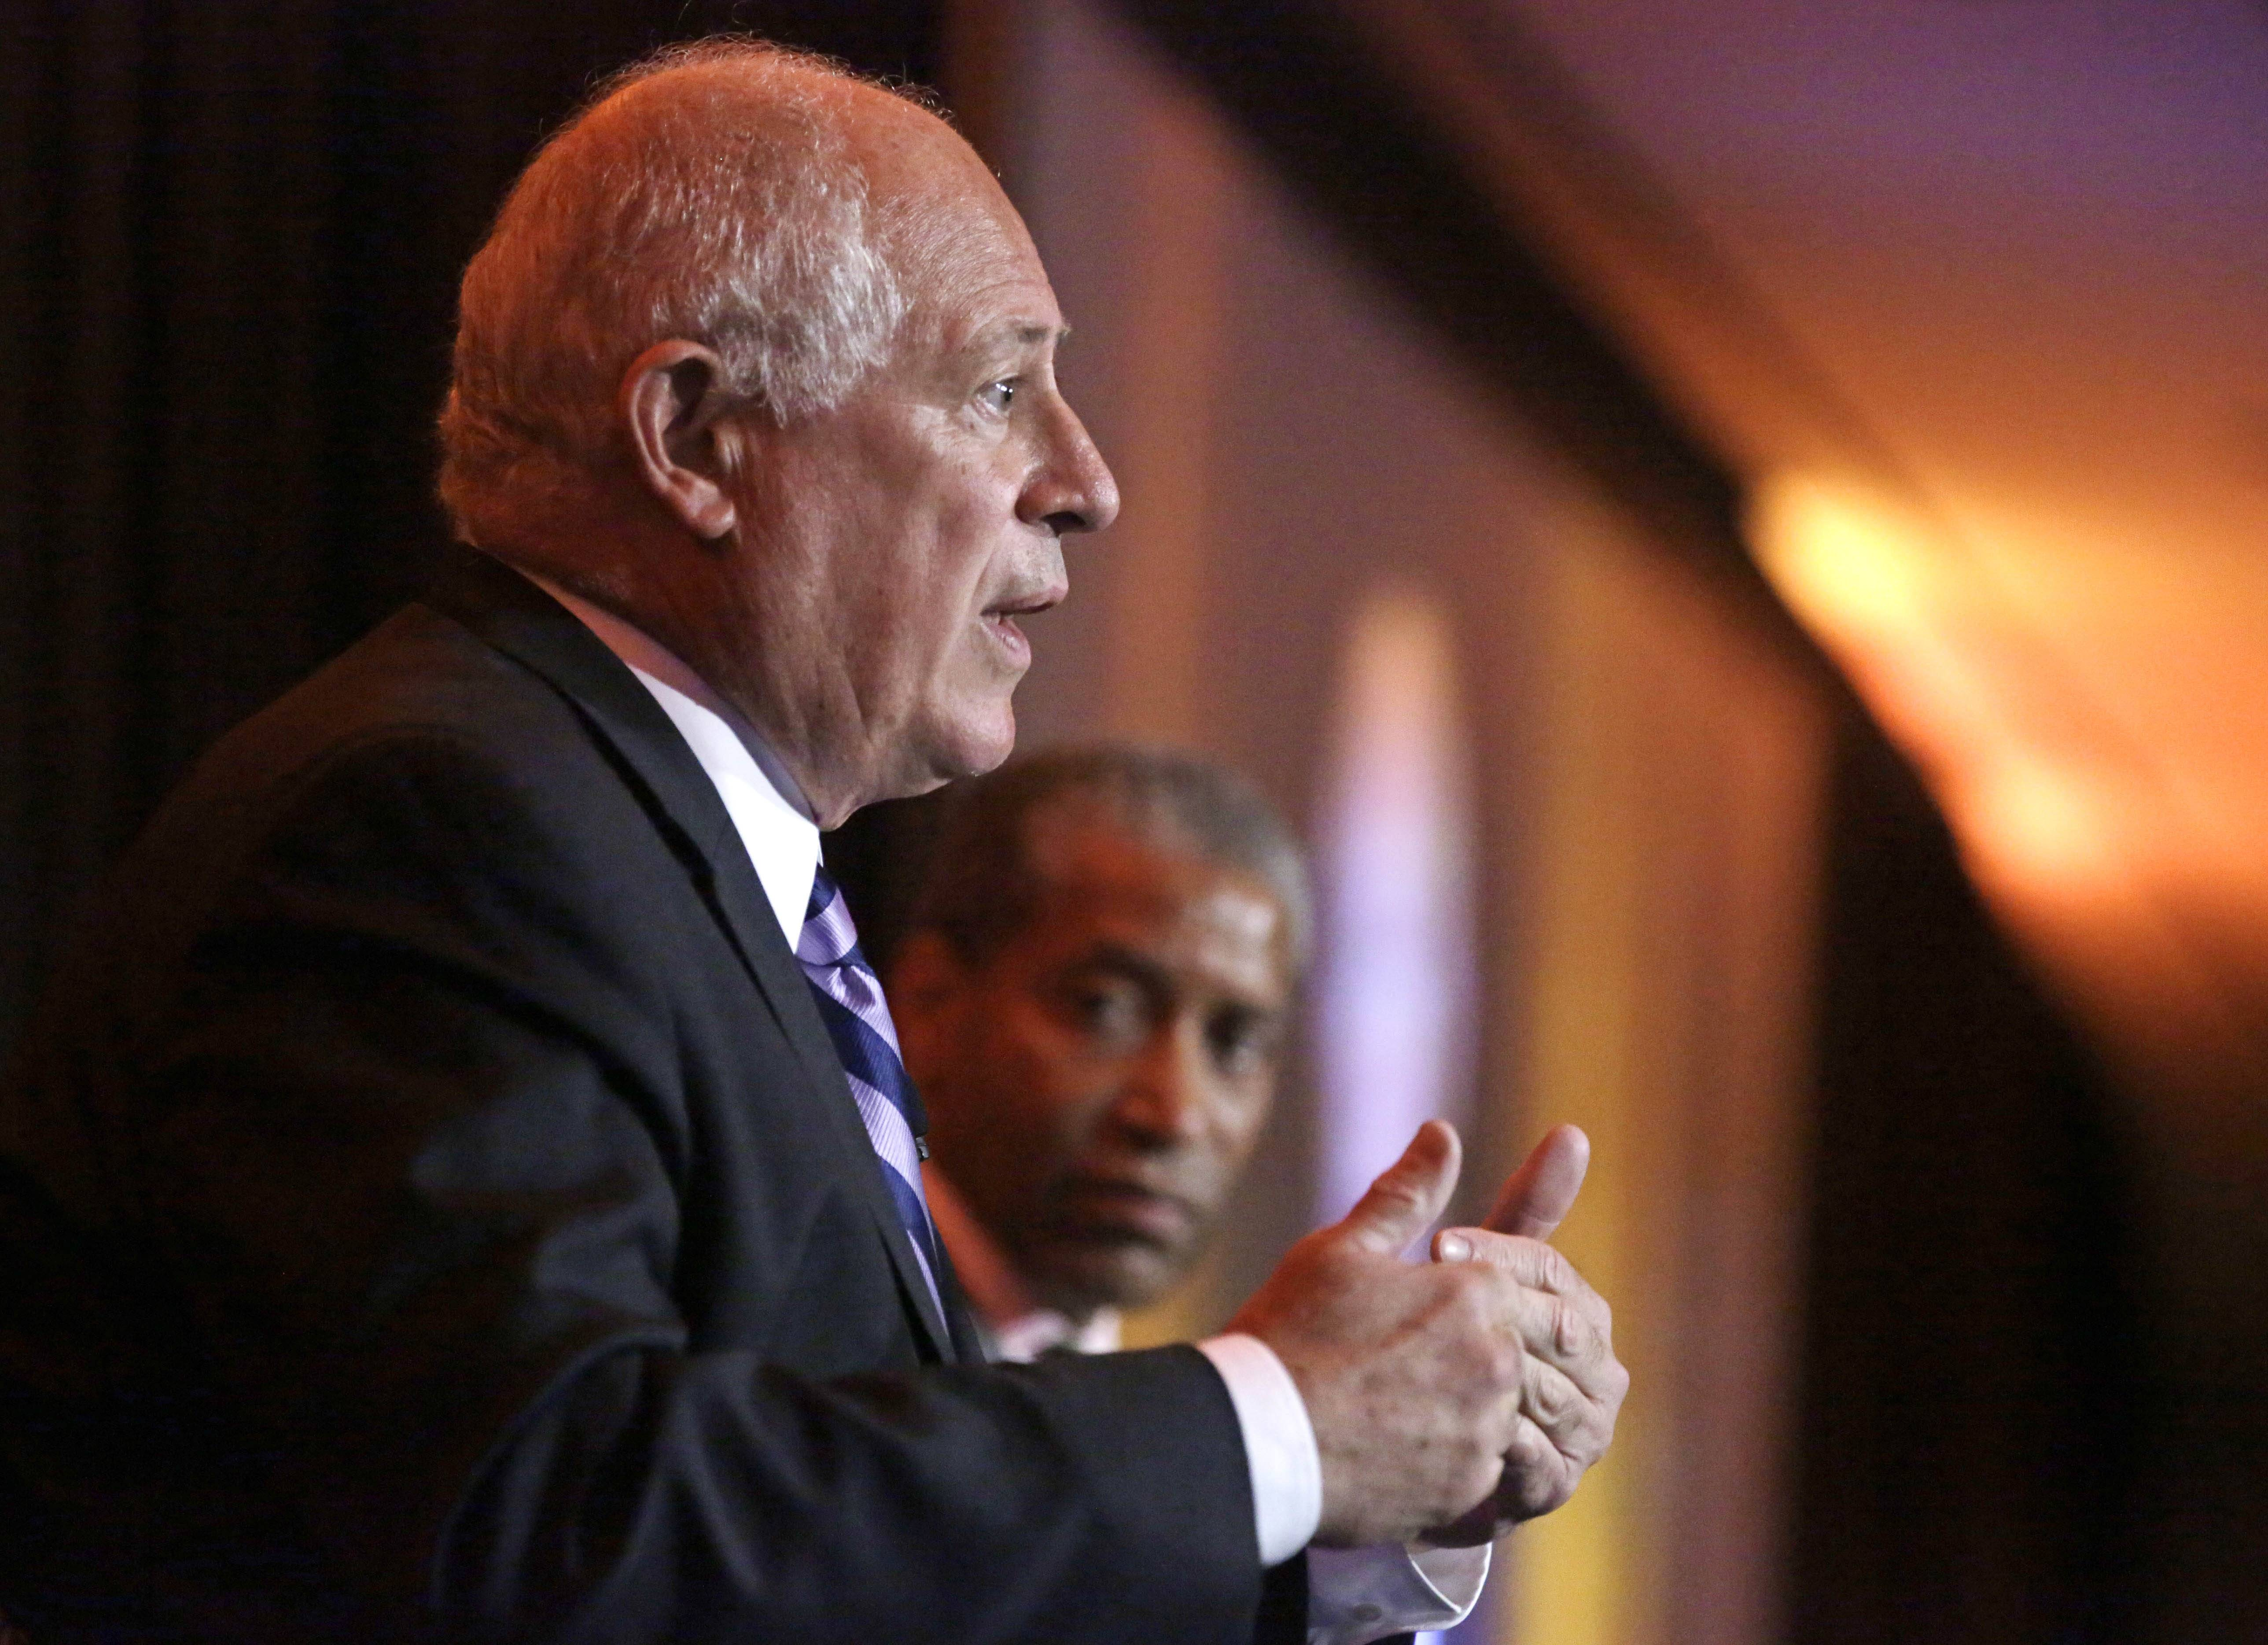 Illinois Gov. Pat Quinn answers questions during the Metropolitan Planning Council's Annual Luncheon Thursday, Aug. 28, in Chicago. Quinn and his opponent Republican gubernatorial candidate Bruce Rauner appeared separately before the group for 25 minute moderated Q&A sessions.